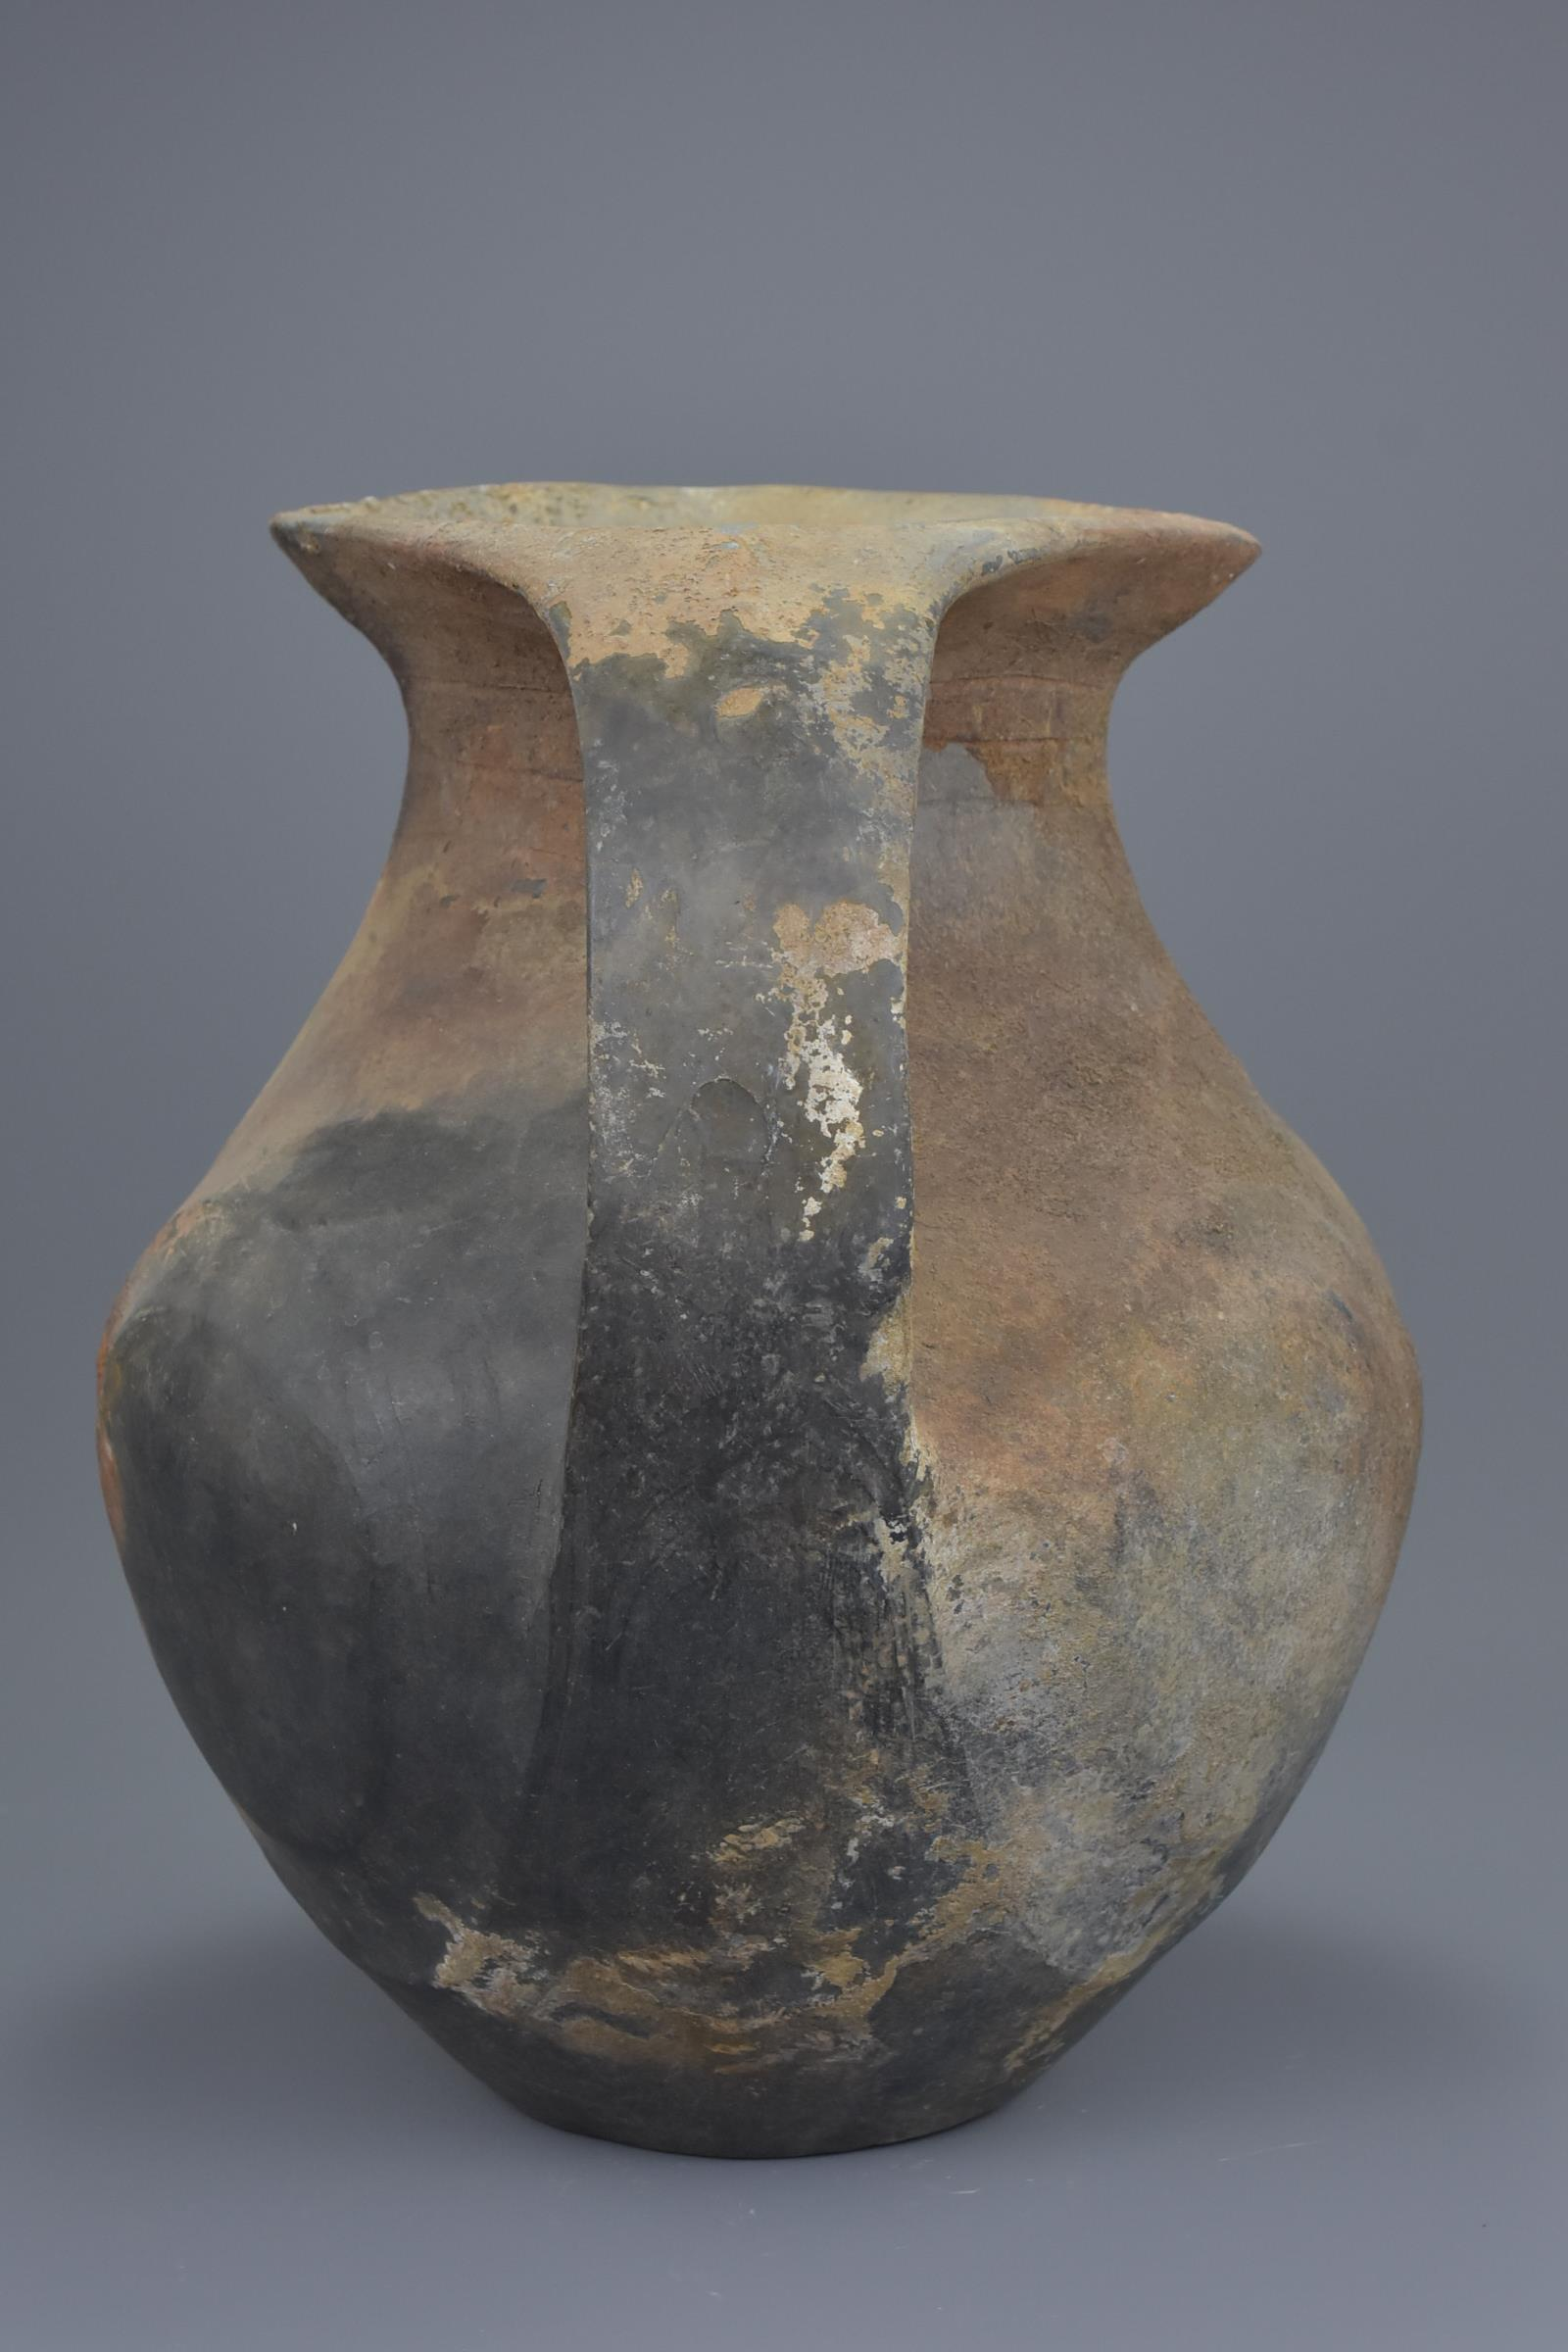 Lot 54 - A Rare Large Chinese Han Dynasty Black Pottery Amphora